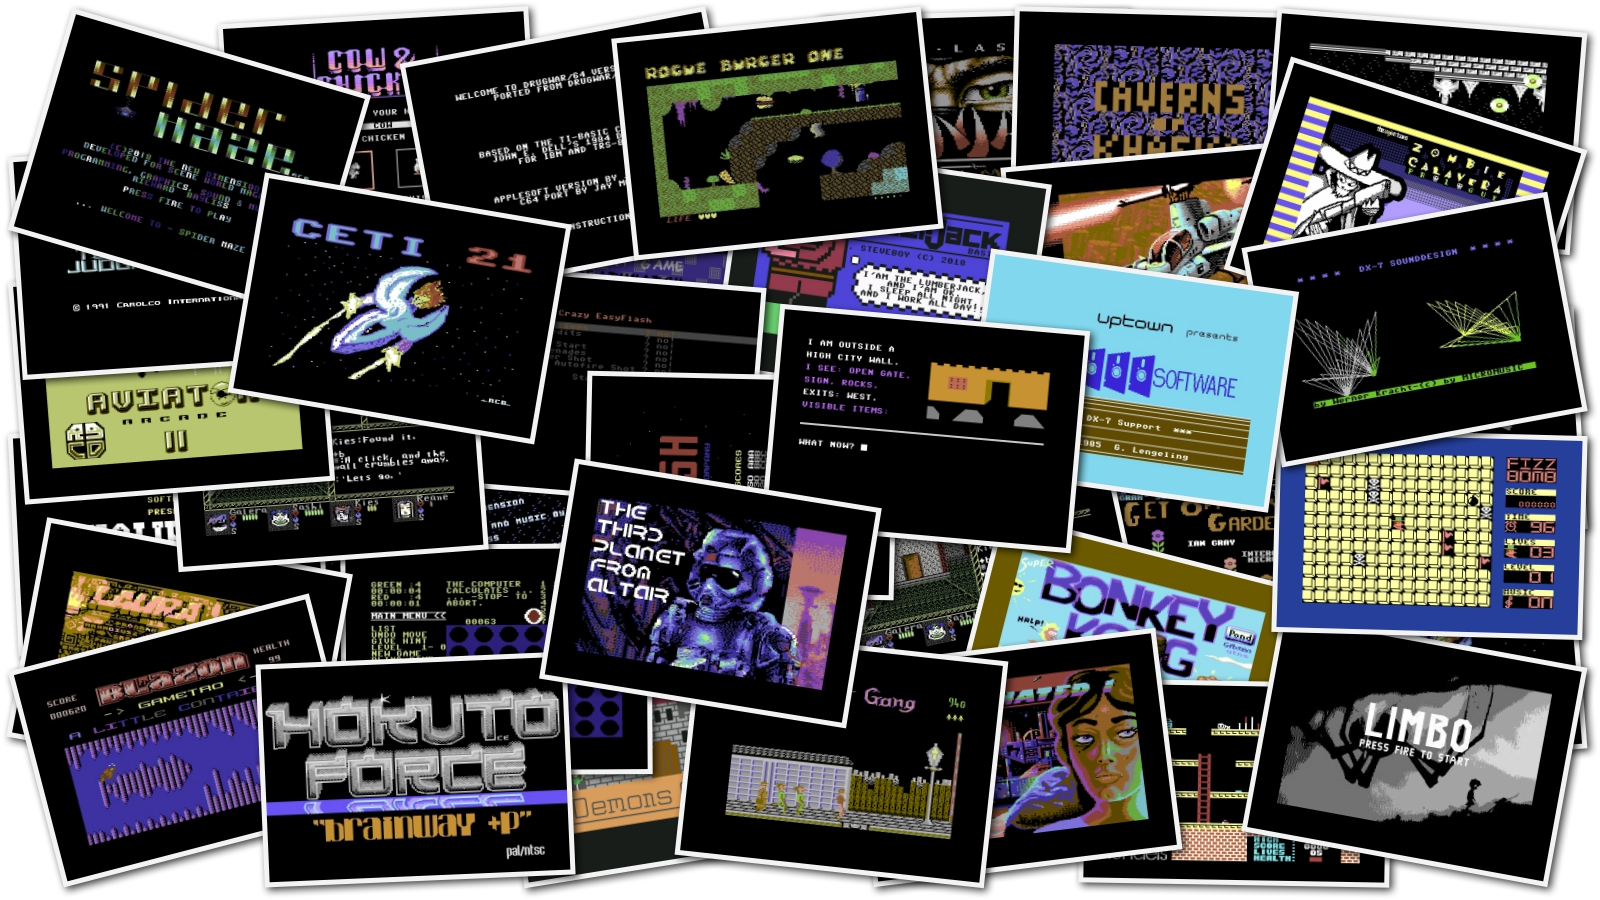 Easyflash | nIGHTFALL Blog / RetroComputerMania com